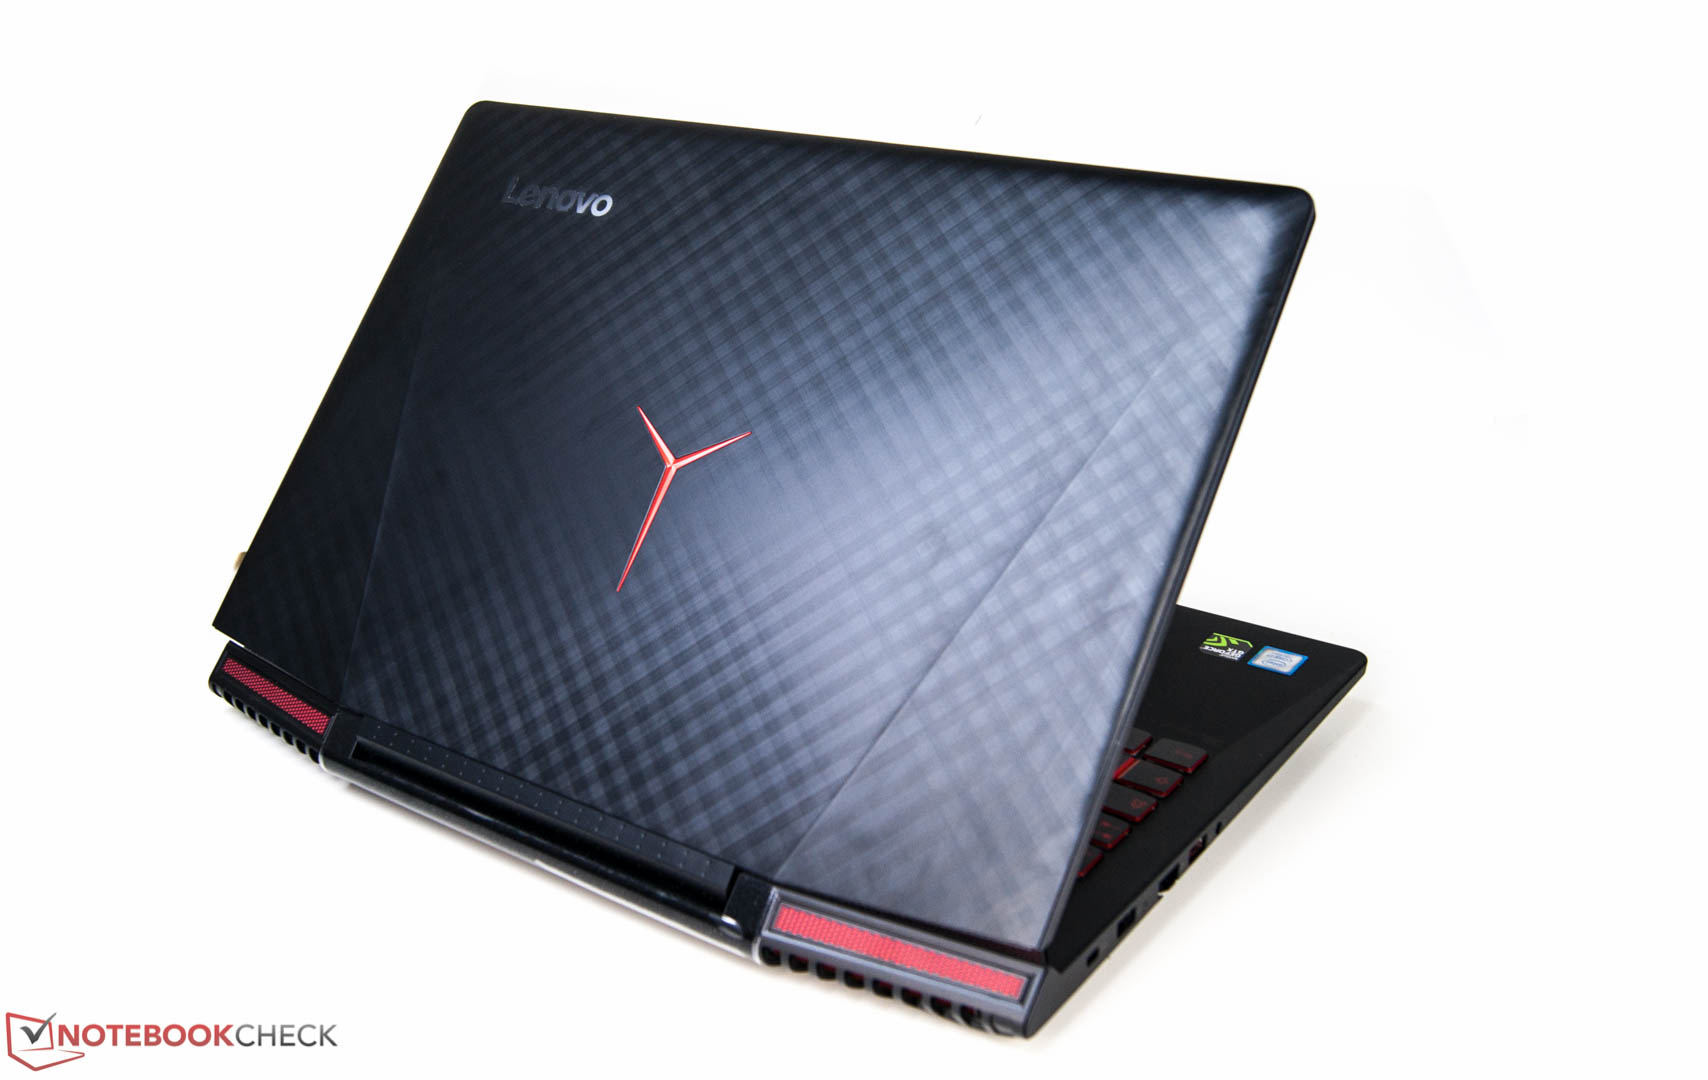 Lenovo Legion Y720 (7700HQ, Full-HD, GTX 1060) Laptop Review